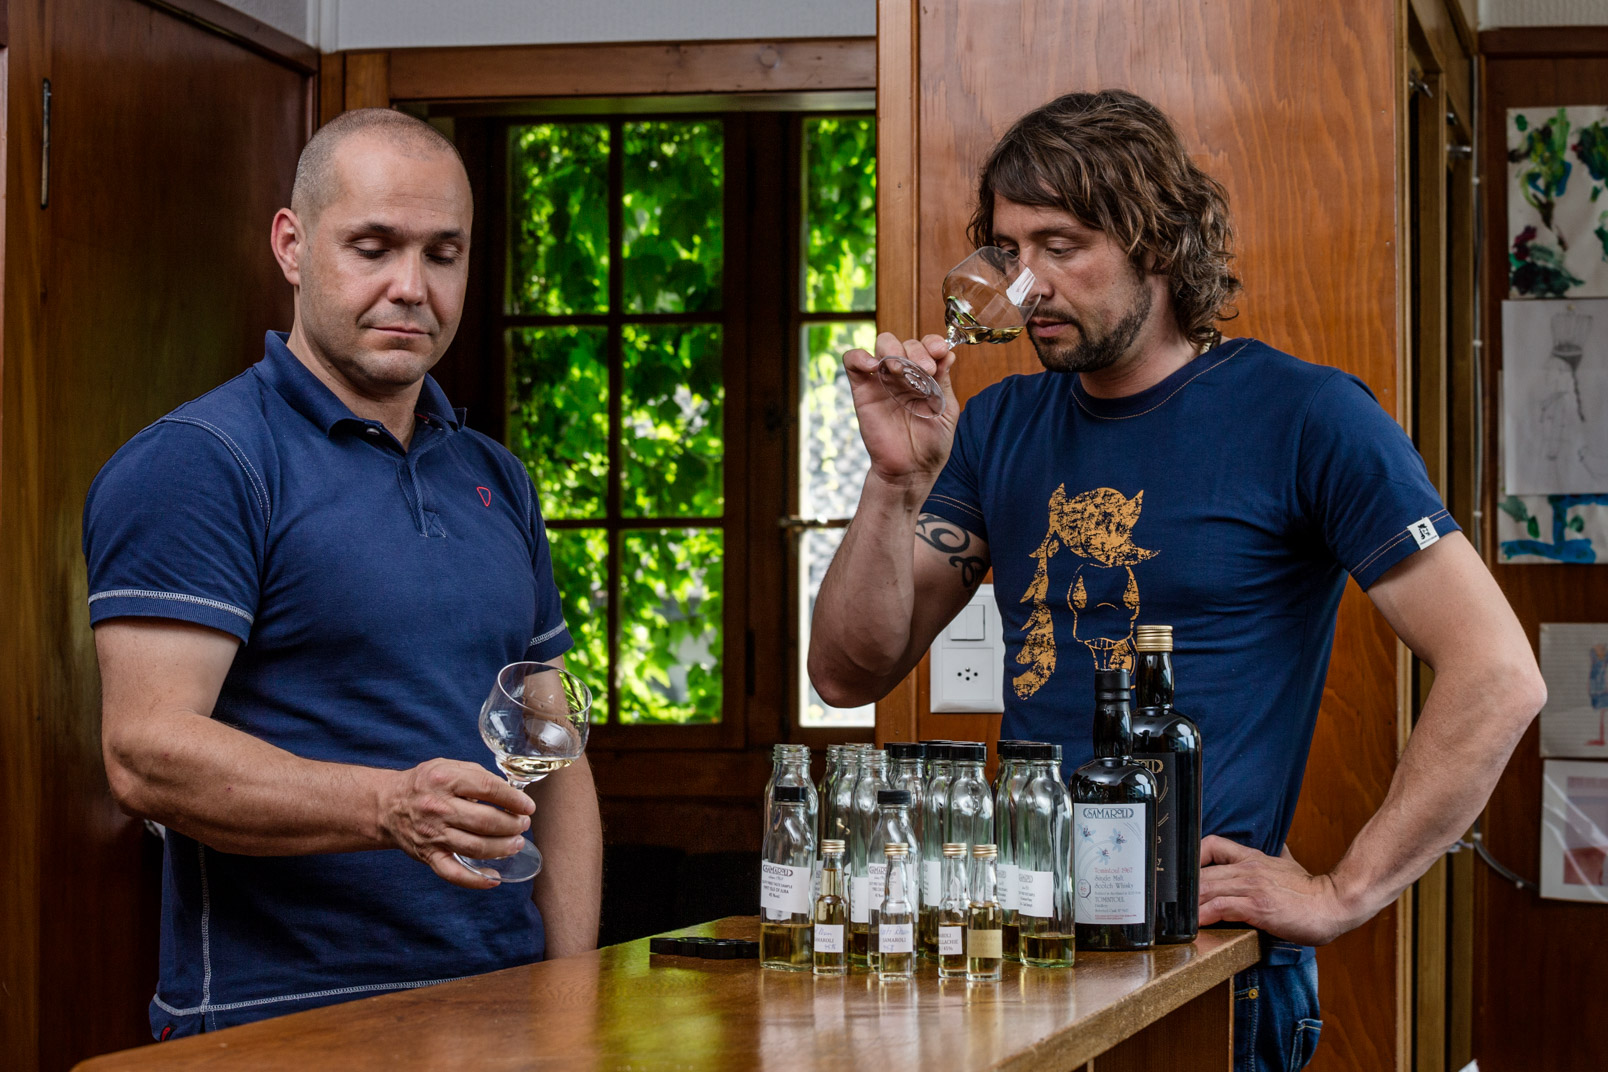 Whisky tasting | Stefan Kuerzi Adventure Photography